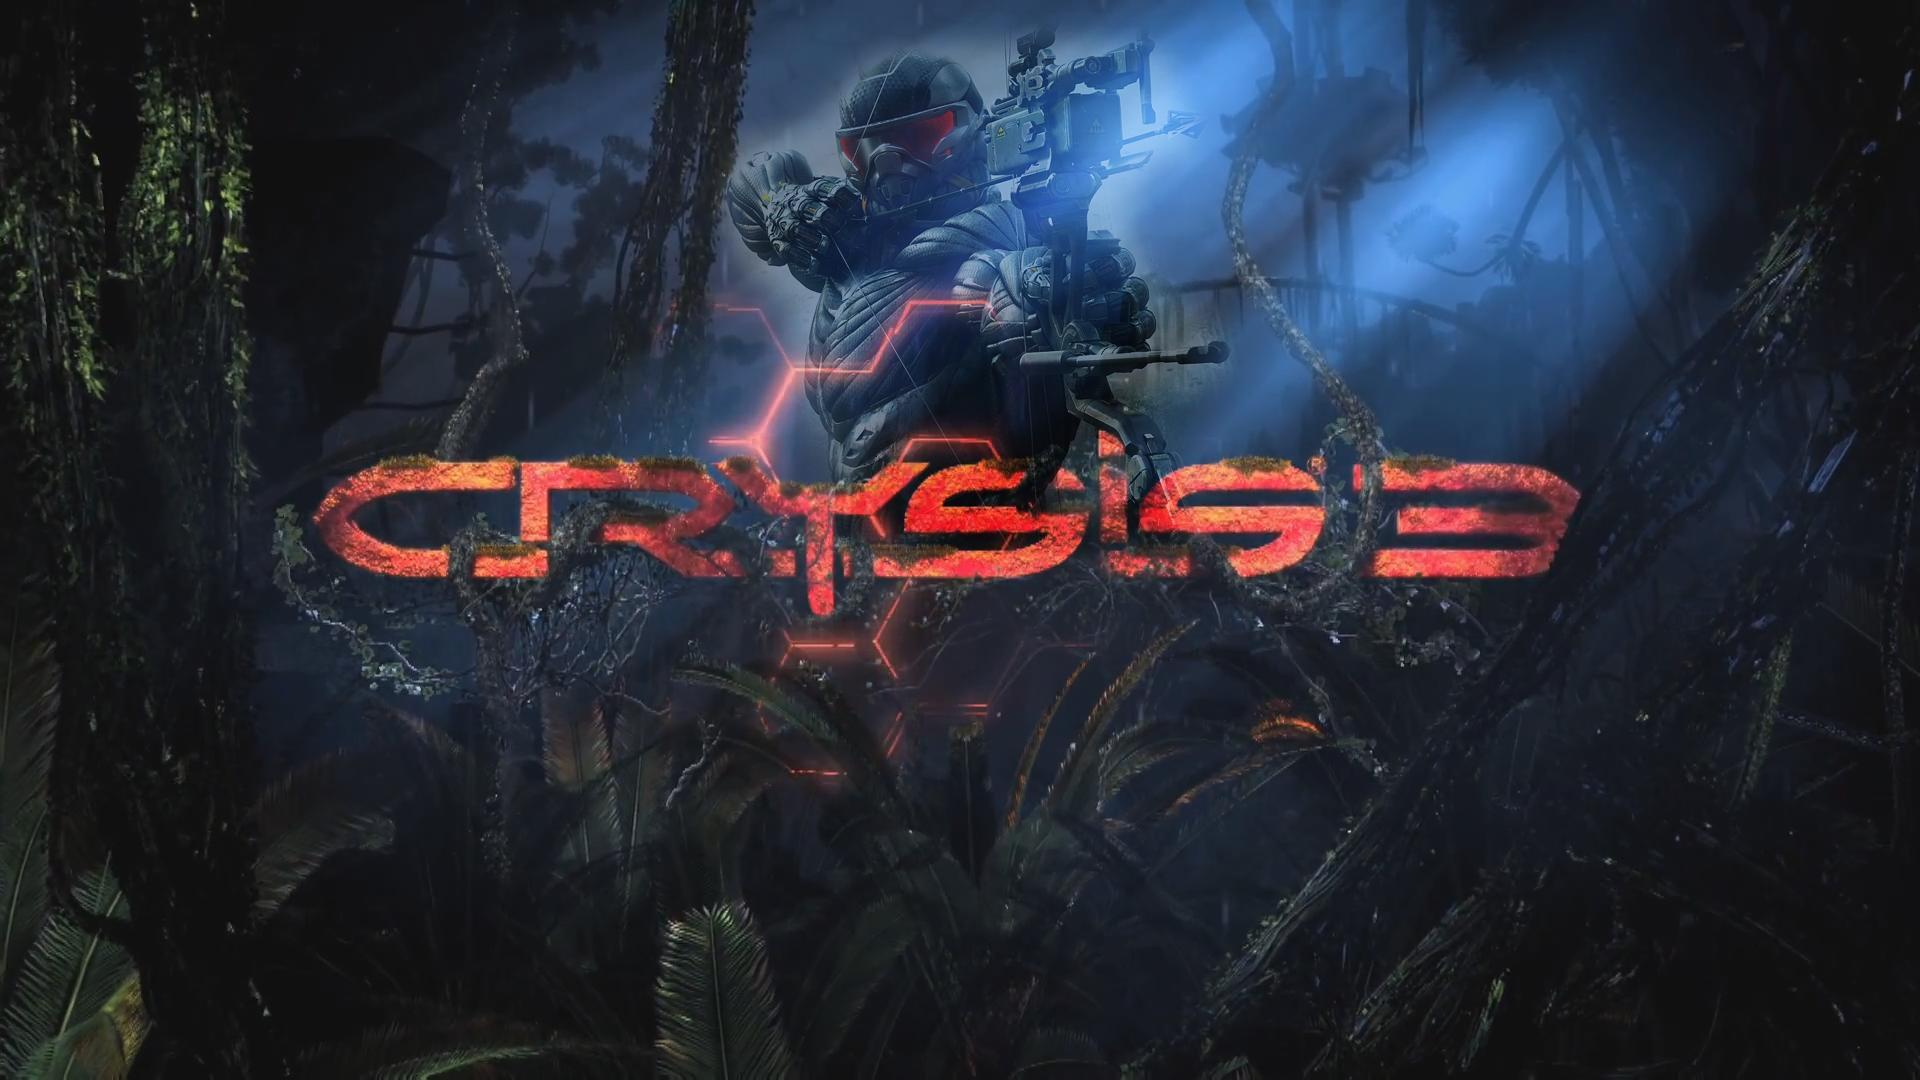 crysis 4 wallpaper hd - photo #19